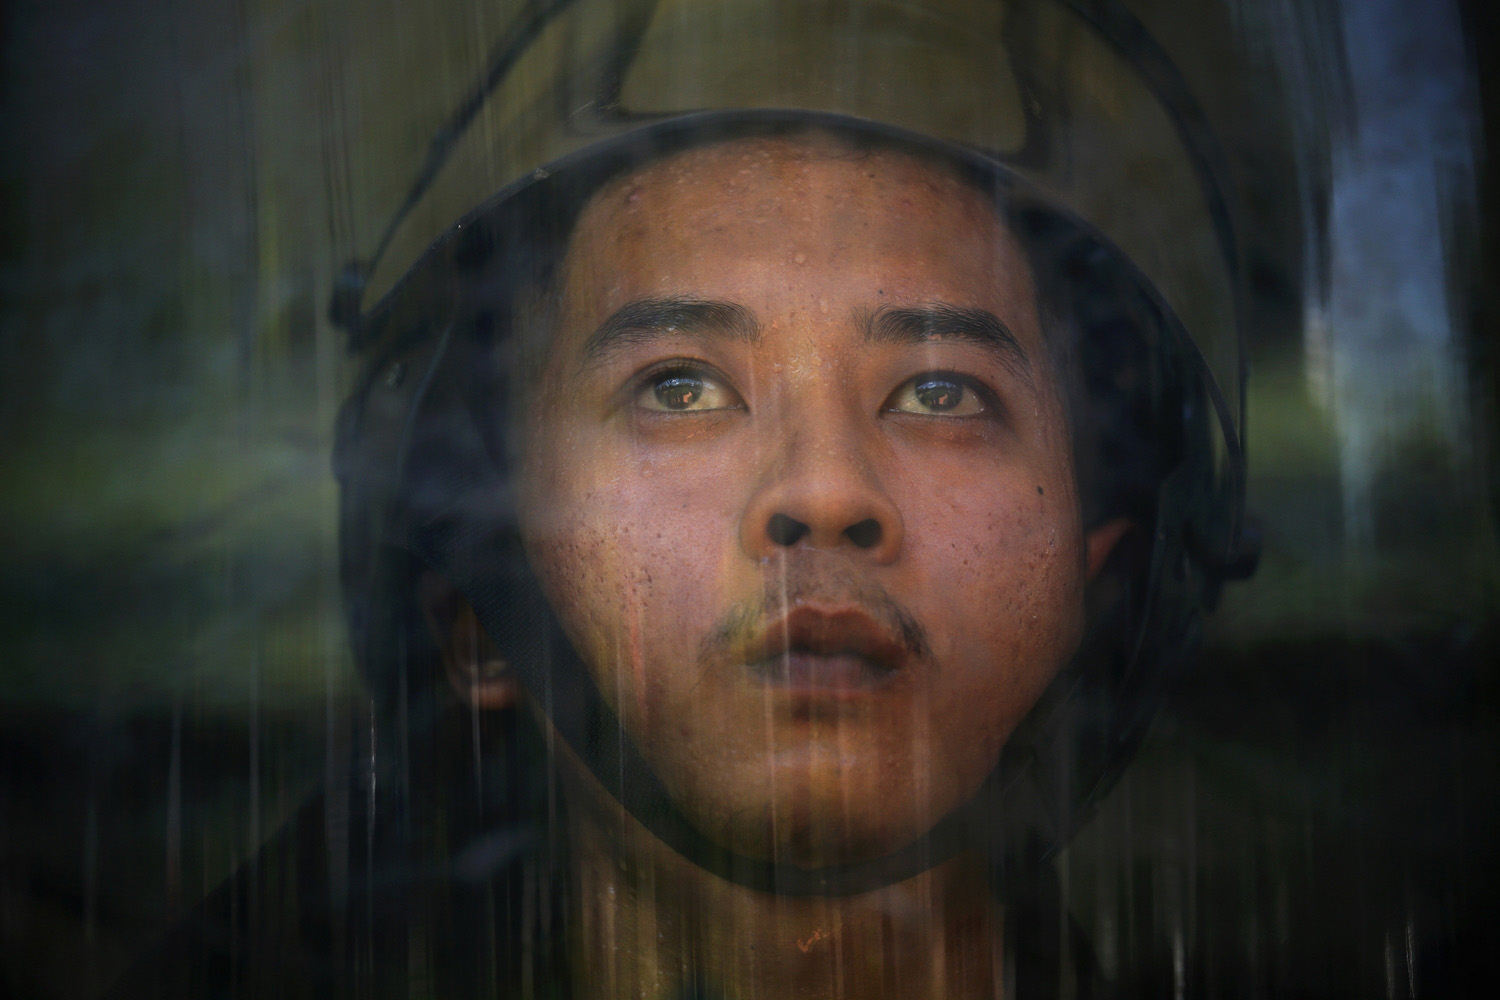 May 15, 2014. A member of an Air Force military force perspires behind his shield after anti-government protesters broke into an air force base in Bangkok, Thailand.